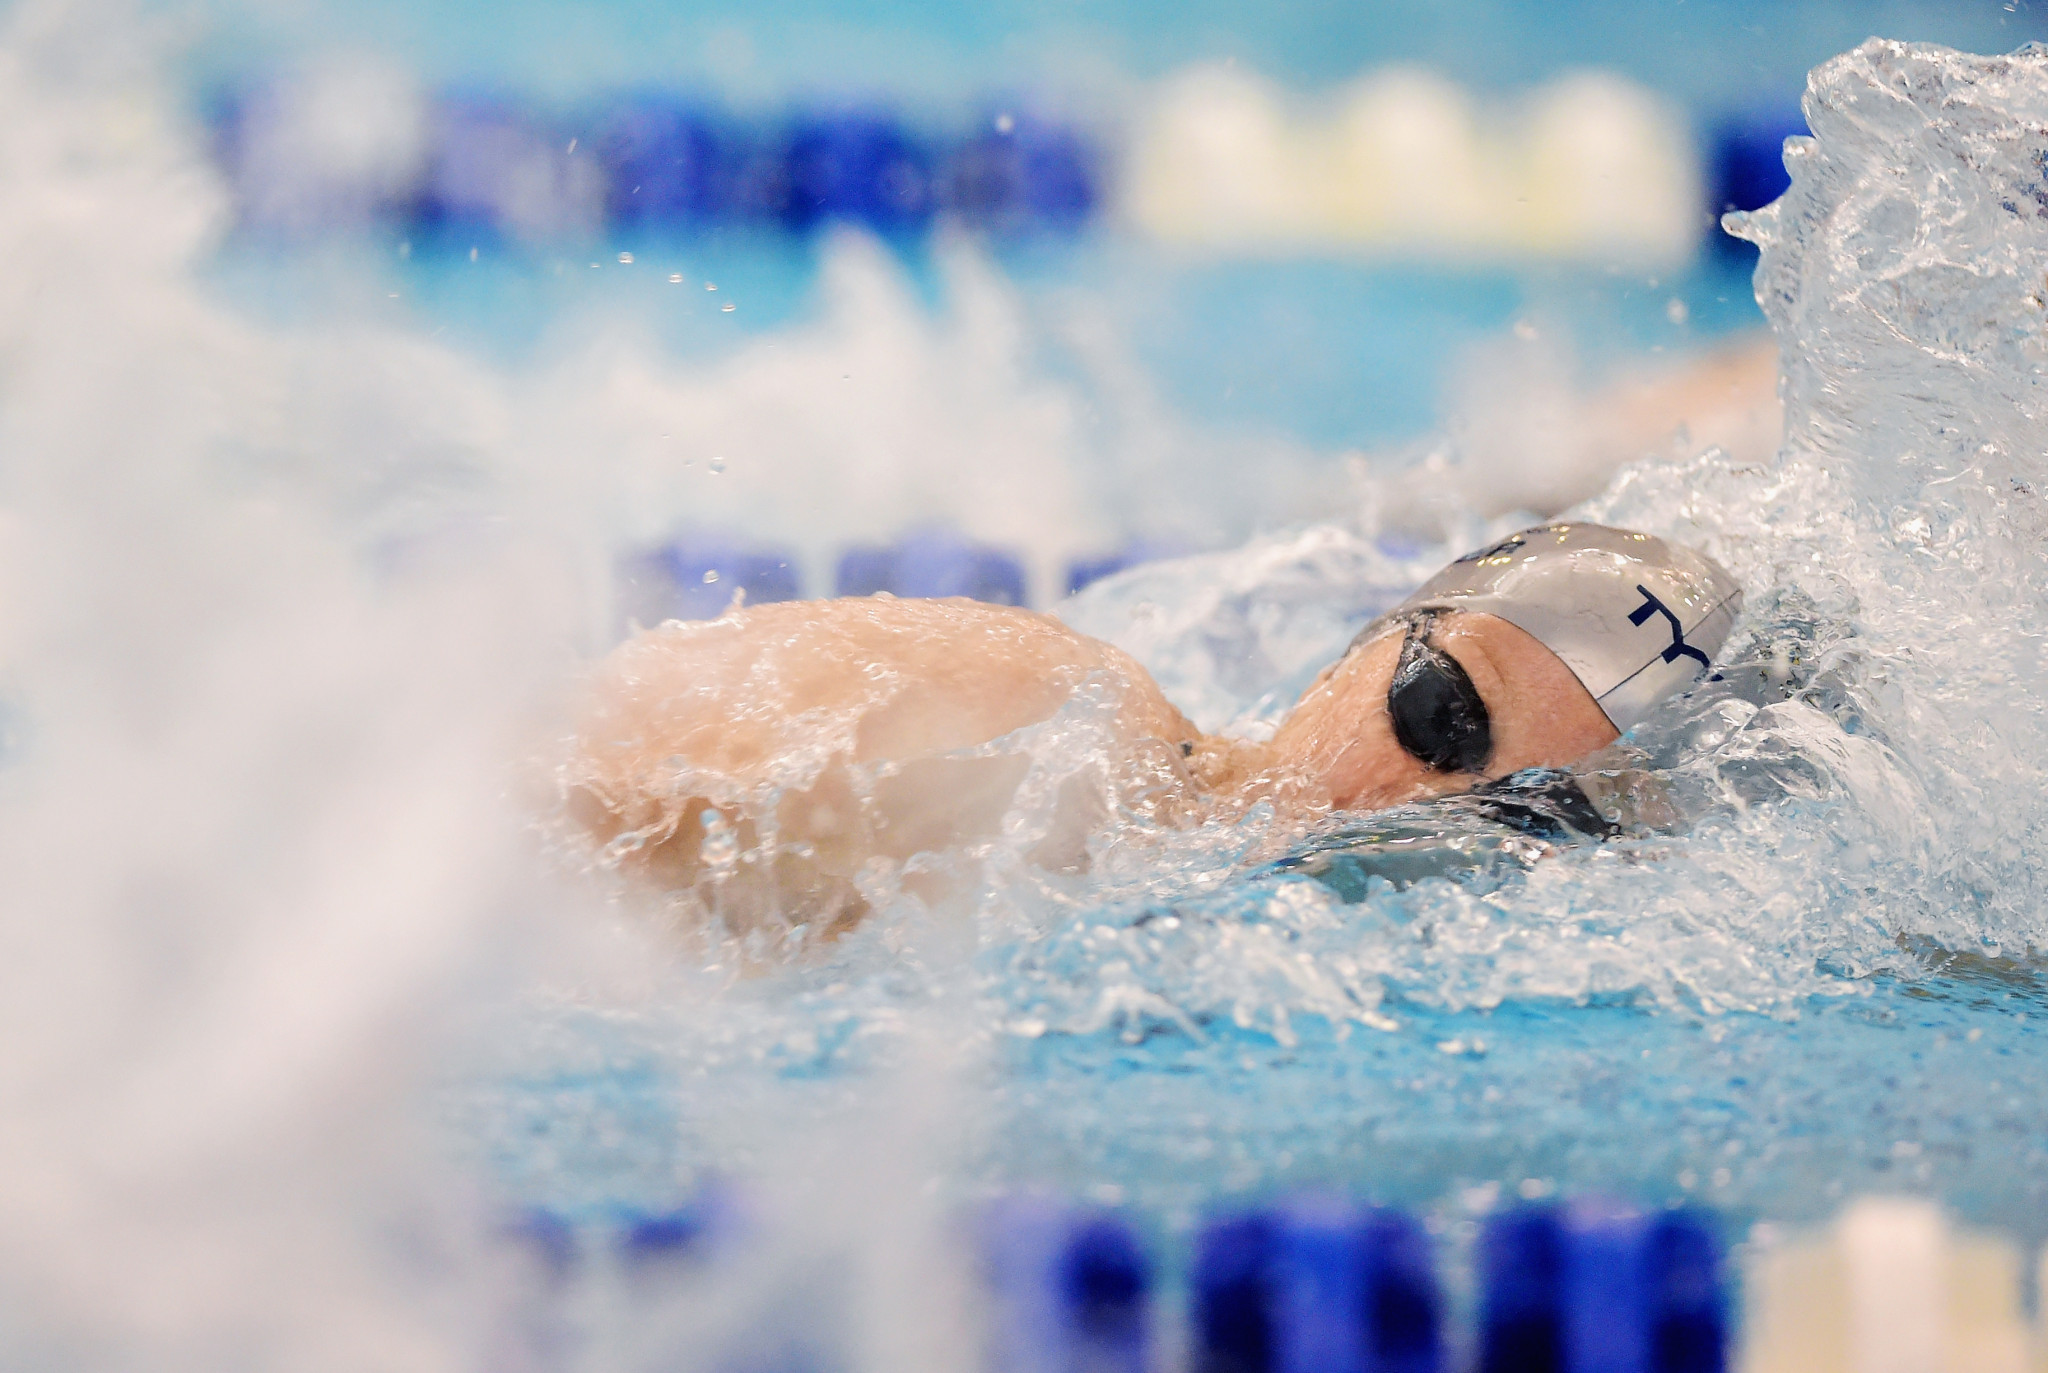 Dana Vollmer is retiring from swimming to focus on other commitments ©Getty Images